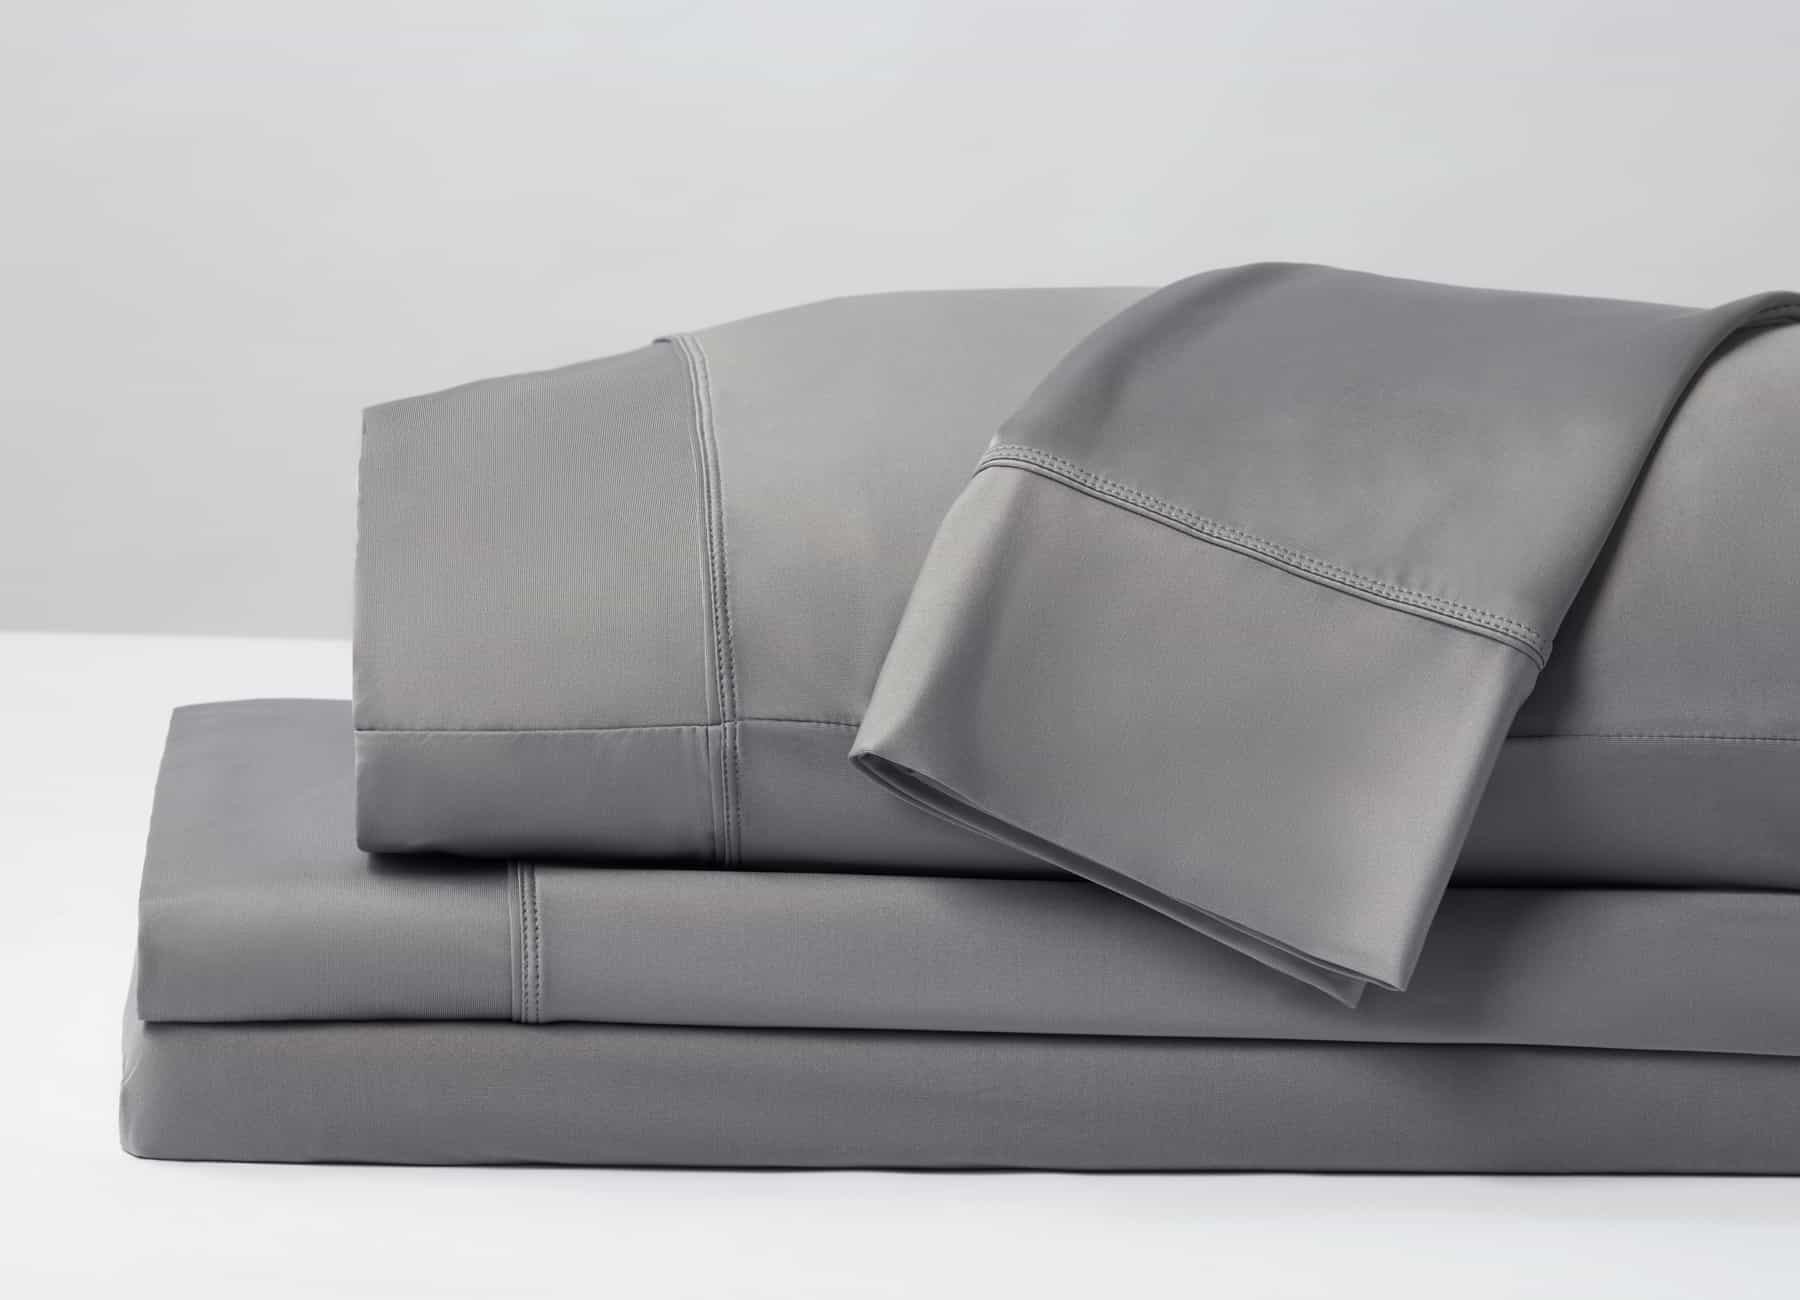 Original Performance Sheet Set Image Shown Folded and Stacked in Graphite #choose-your-color_graphite